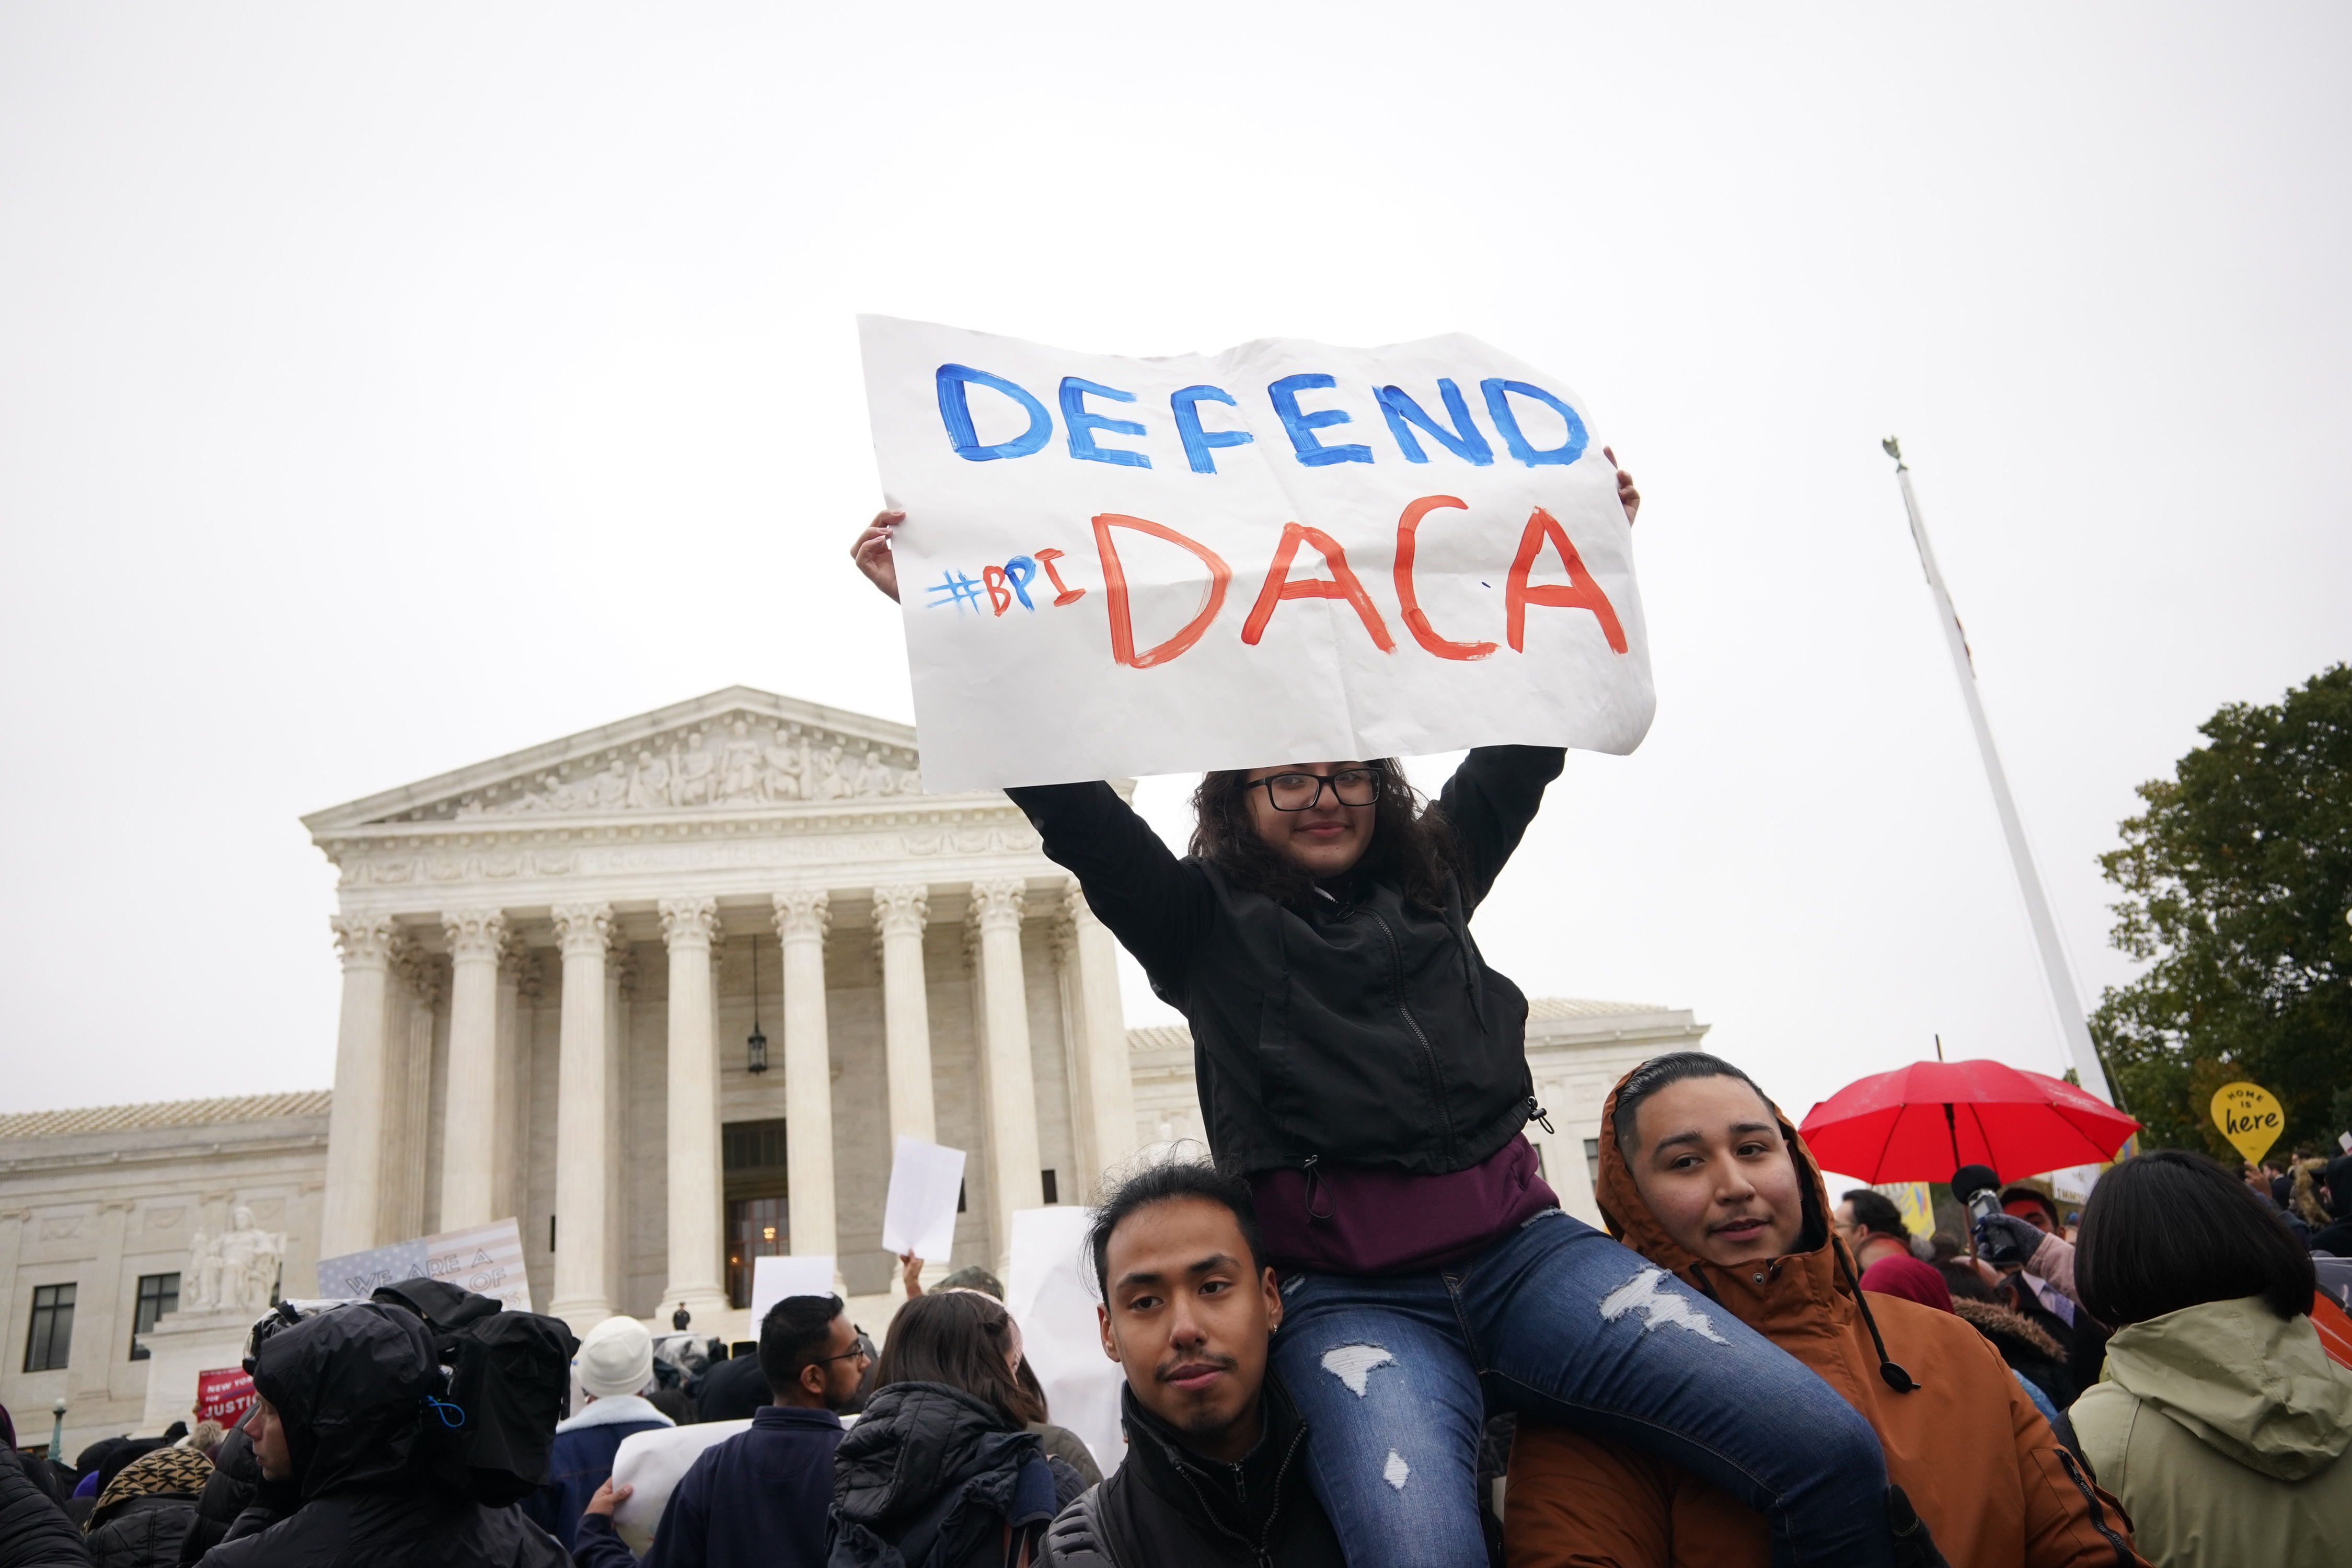 Immigration rights activists take part in a rally in front of the US Supreme Court in Washington, DC on November 12, 2019. - The US Supreme Court hears arguments on November 12, 2019 on the fate of the  Dreamers,  an estimated 700,000 people brought to the country illegally as children but allowed to stay and work under a program created by former president Barack Obama.Known as Deferred Action for Childhood Arrivals or DACA, the program came under attack from President Donald Trump who wants it terminated, and expired last year after the Congress failed to come up with a replacement.